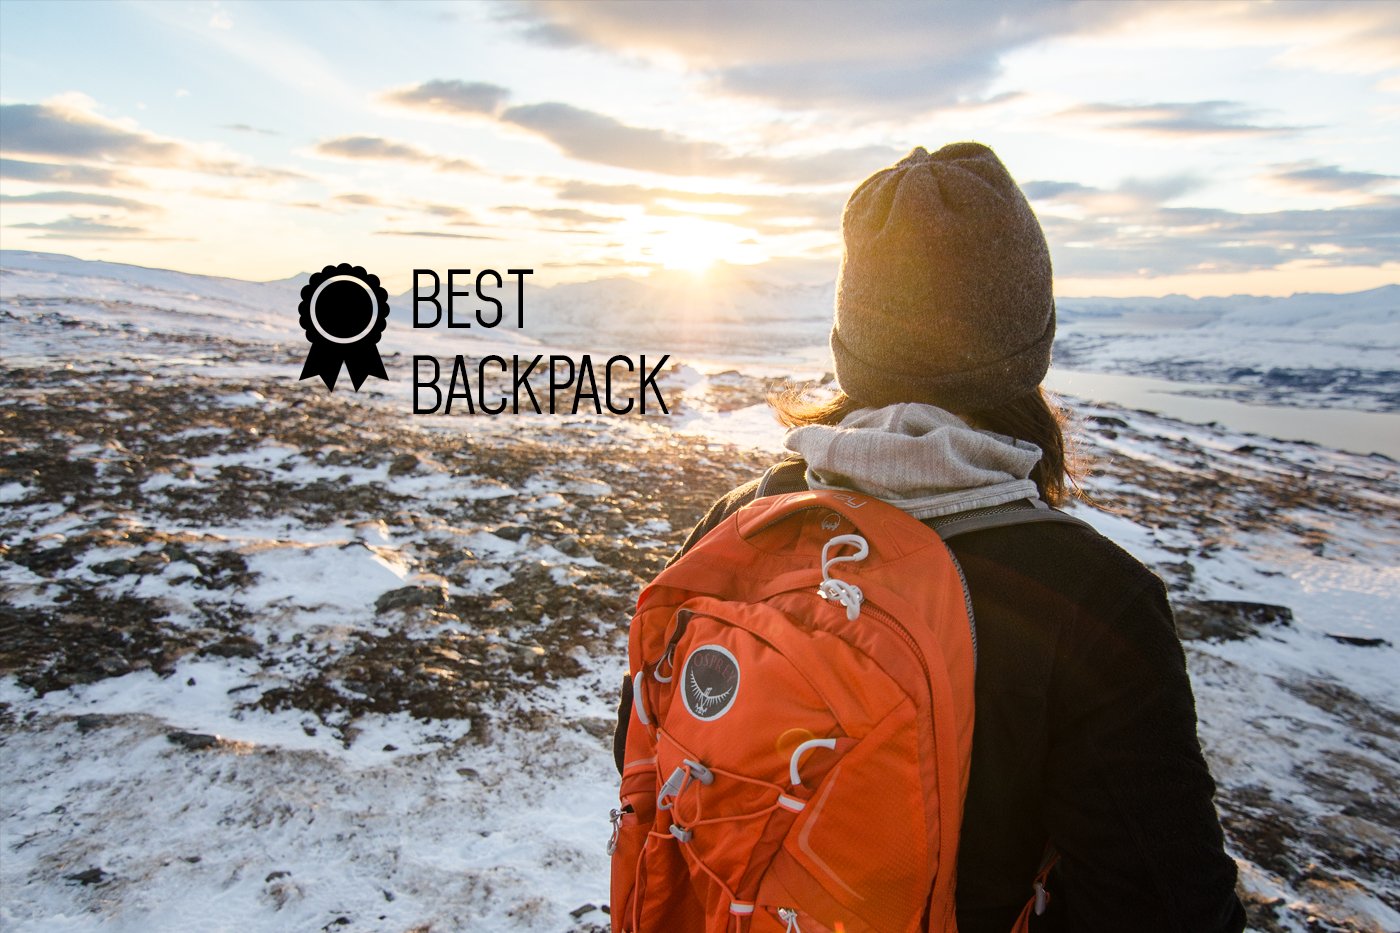 Best quality backpack - Buy it for life (BIFL)